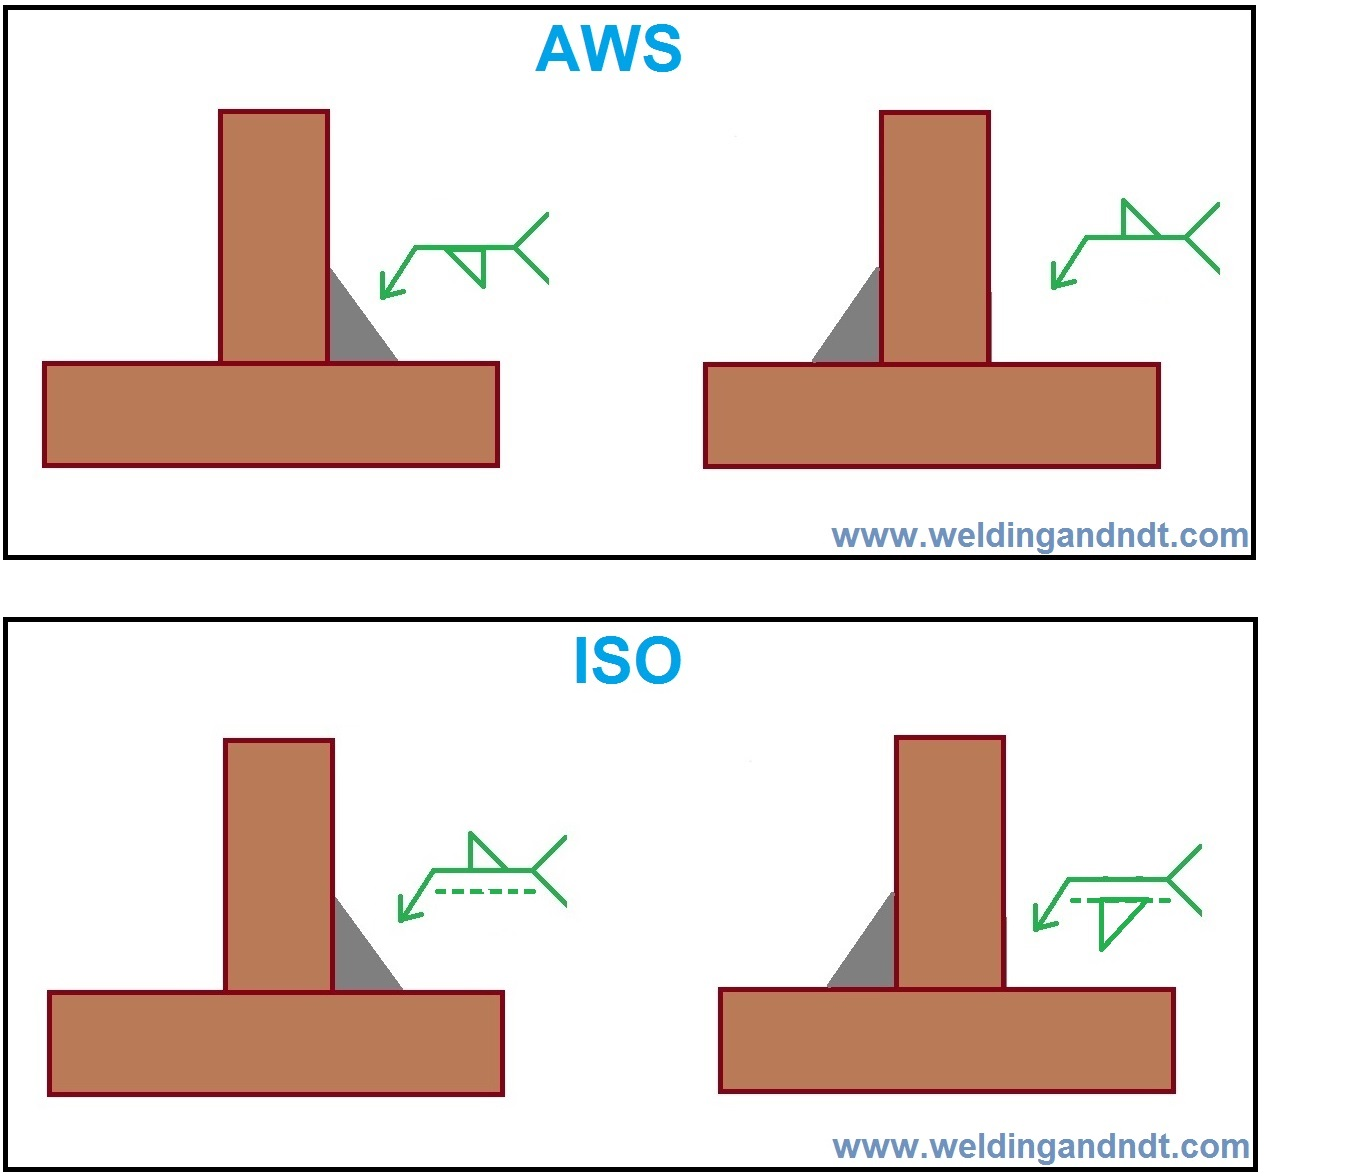 Fillet Iso Aws Welding And Ndt